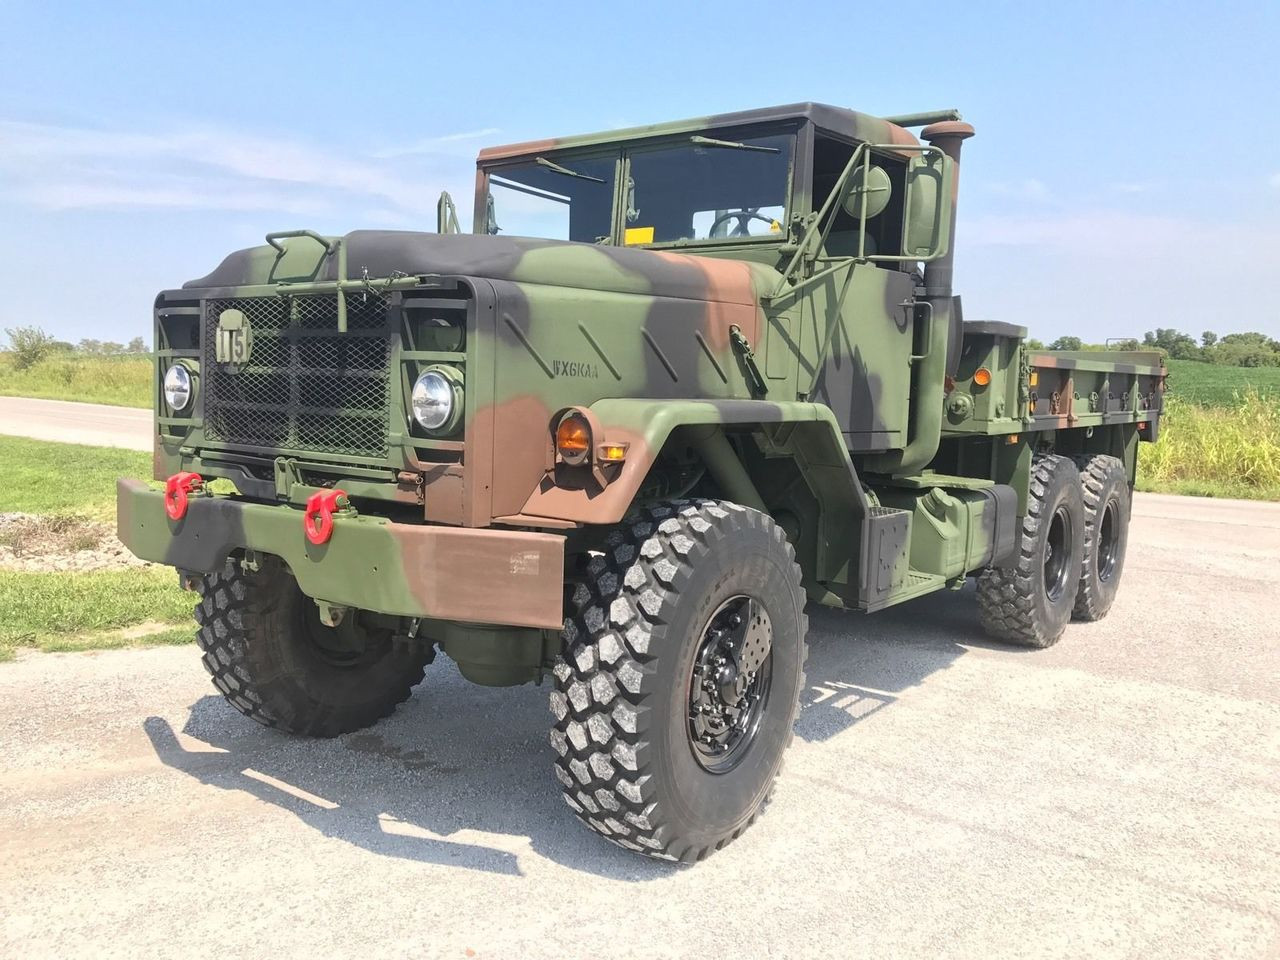 Bmy M923a2 Military 6x6 Cargo Truck 5 Ton Midwest Military Equipment